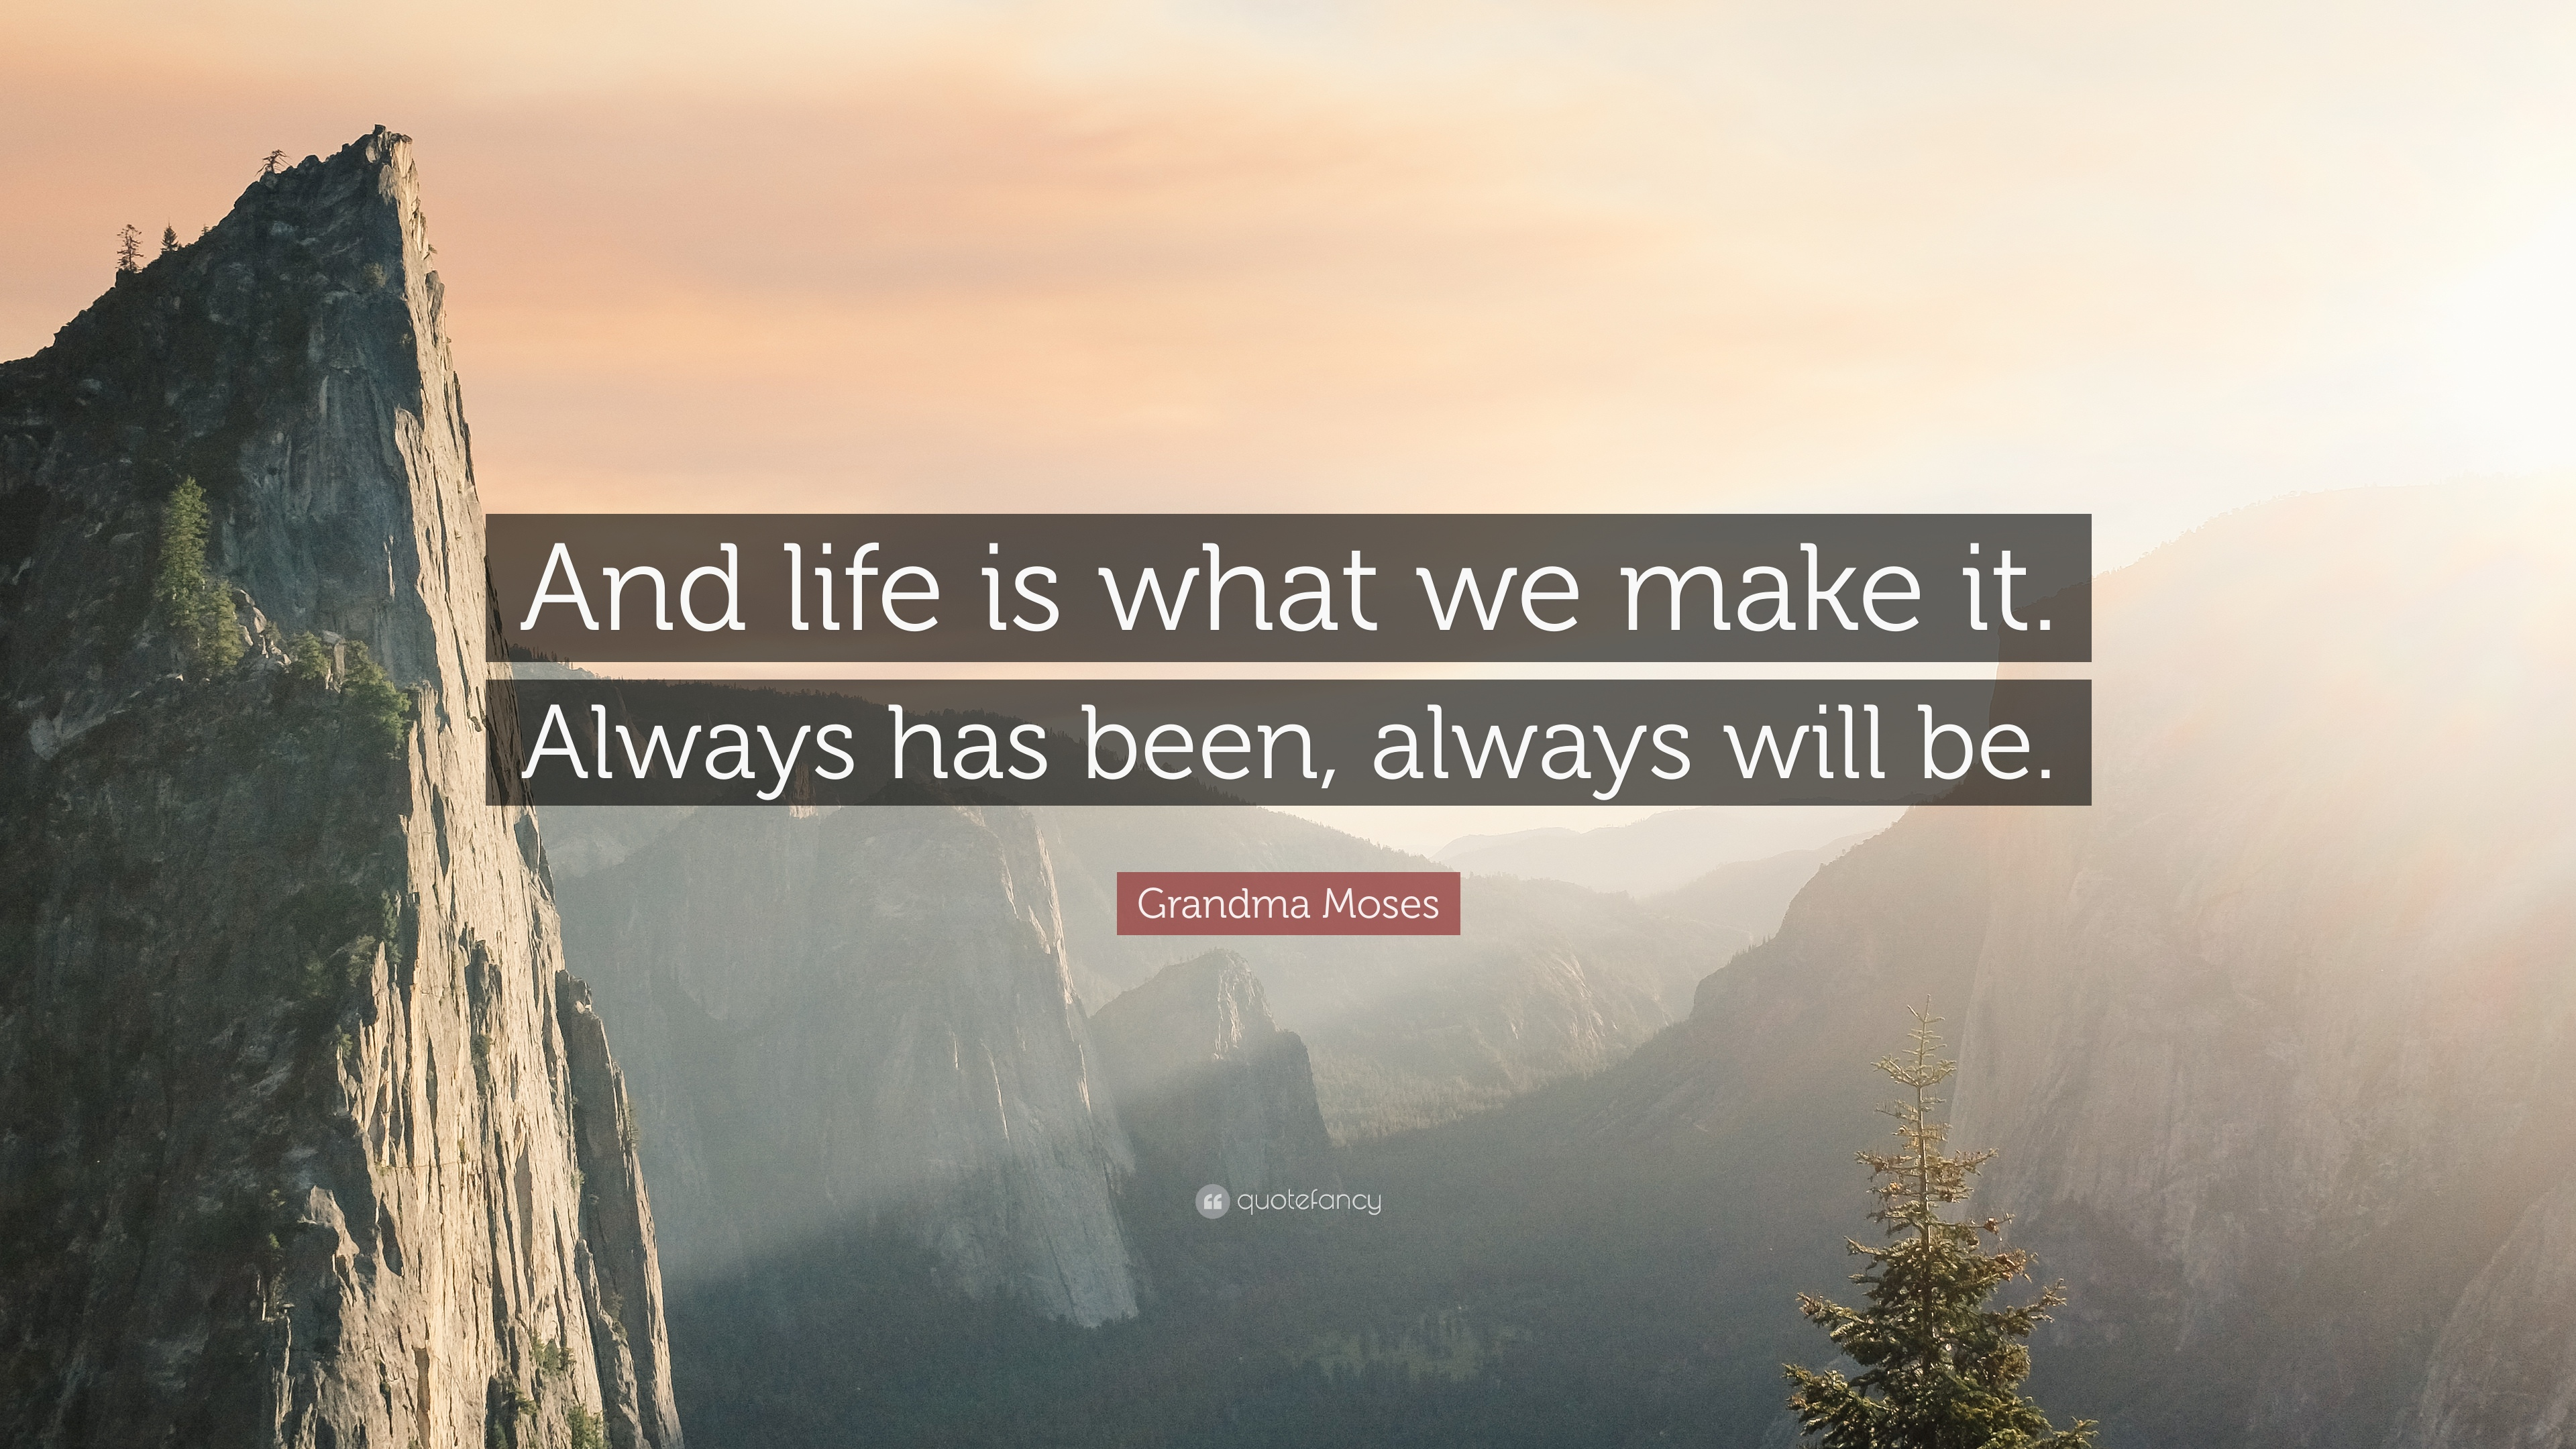 Grandma Moses Quote And Life Is What We Make It Always Has Been